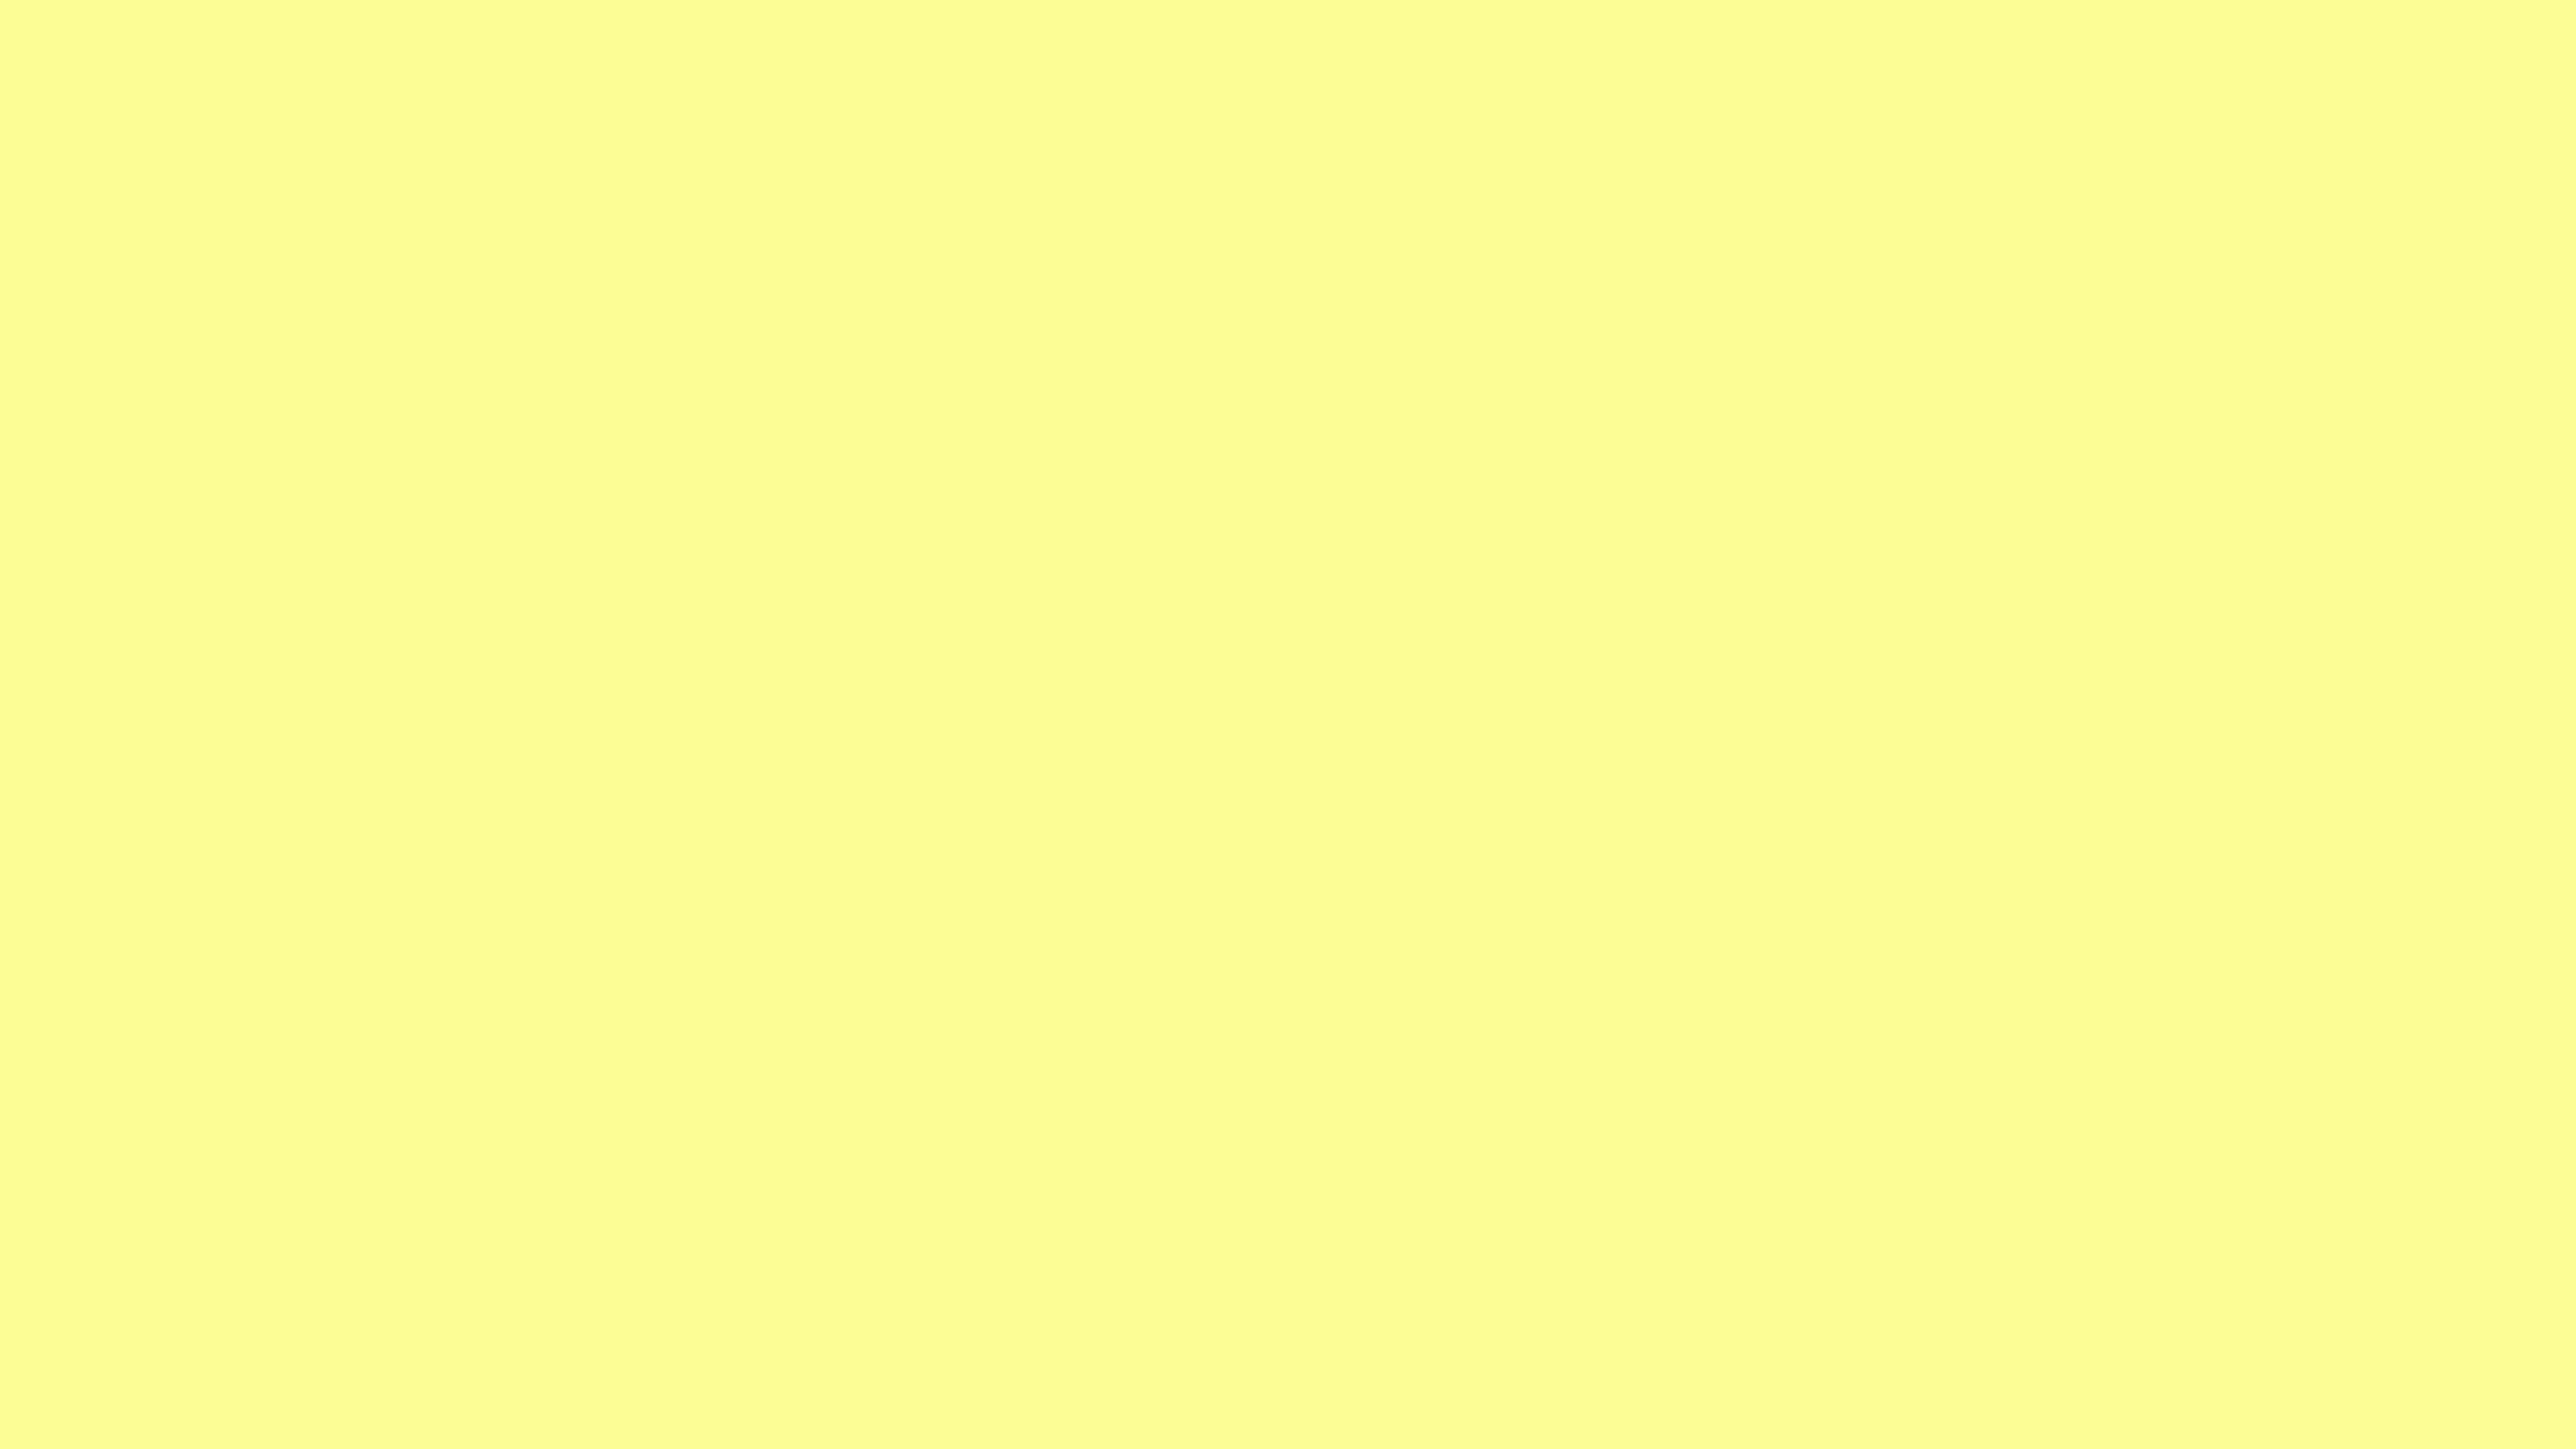 3840x2160 Pastel Yellow Solid Color Background